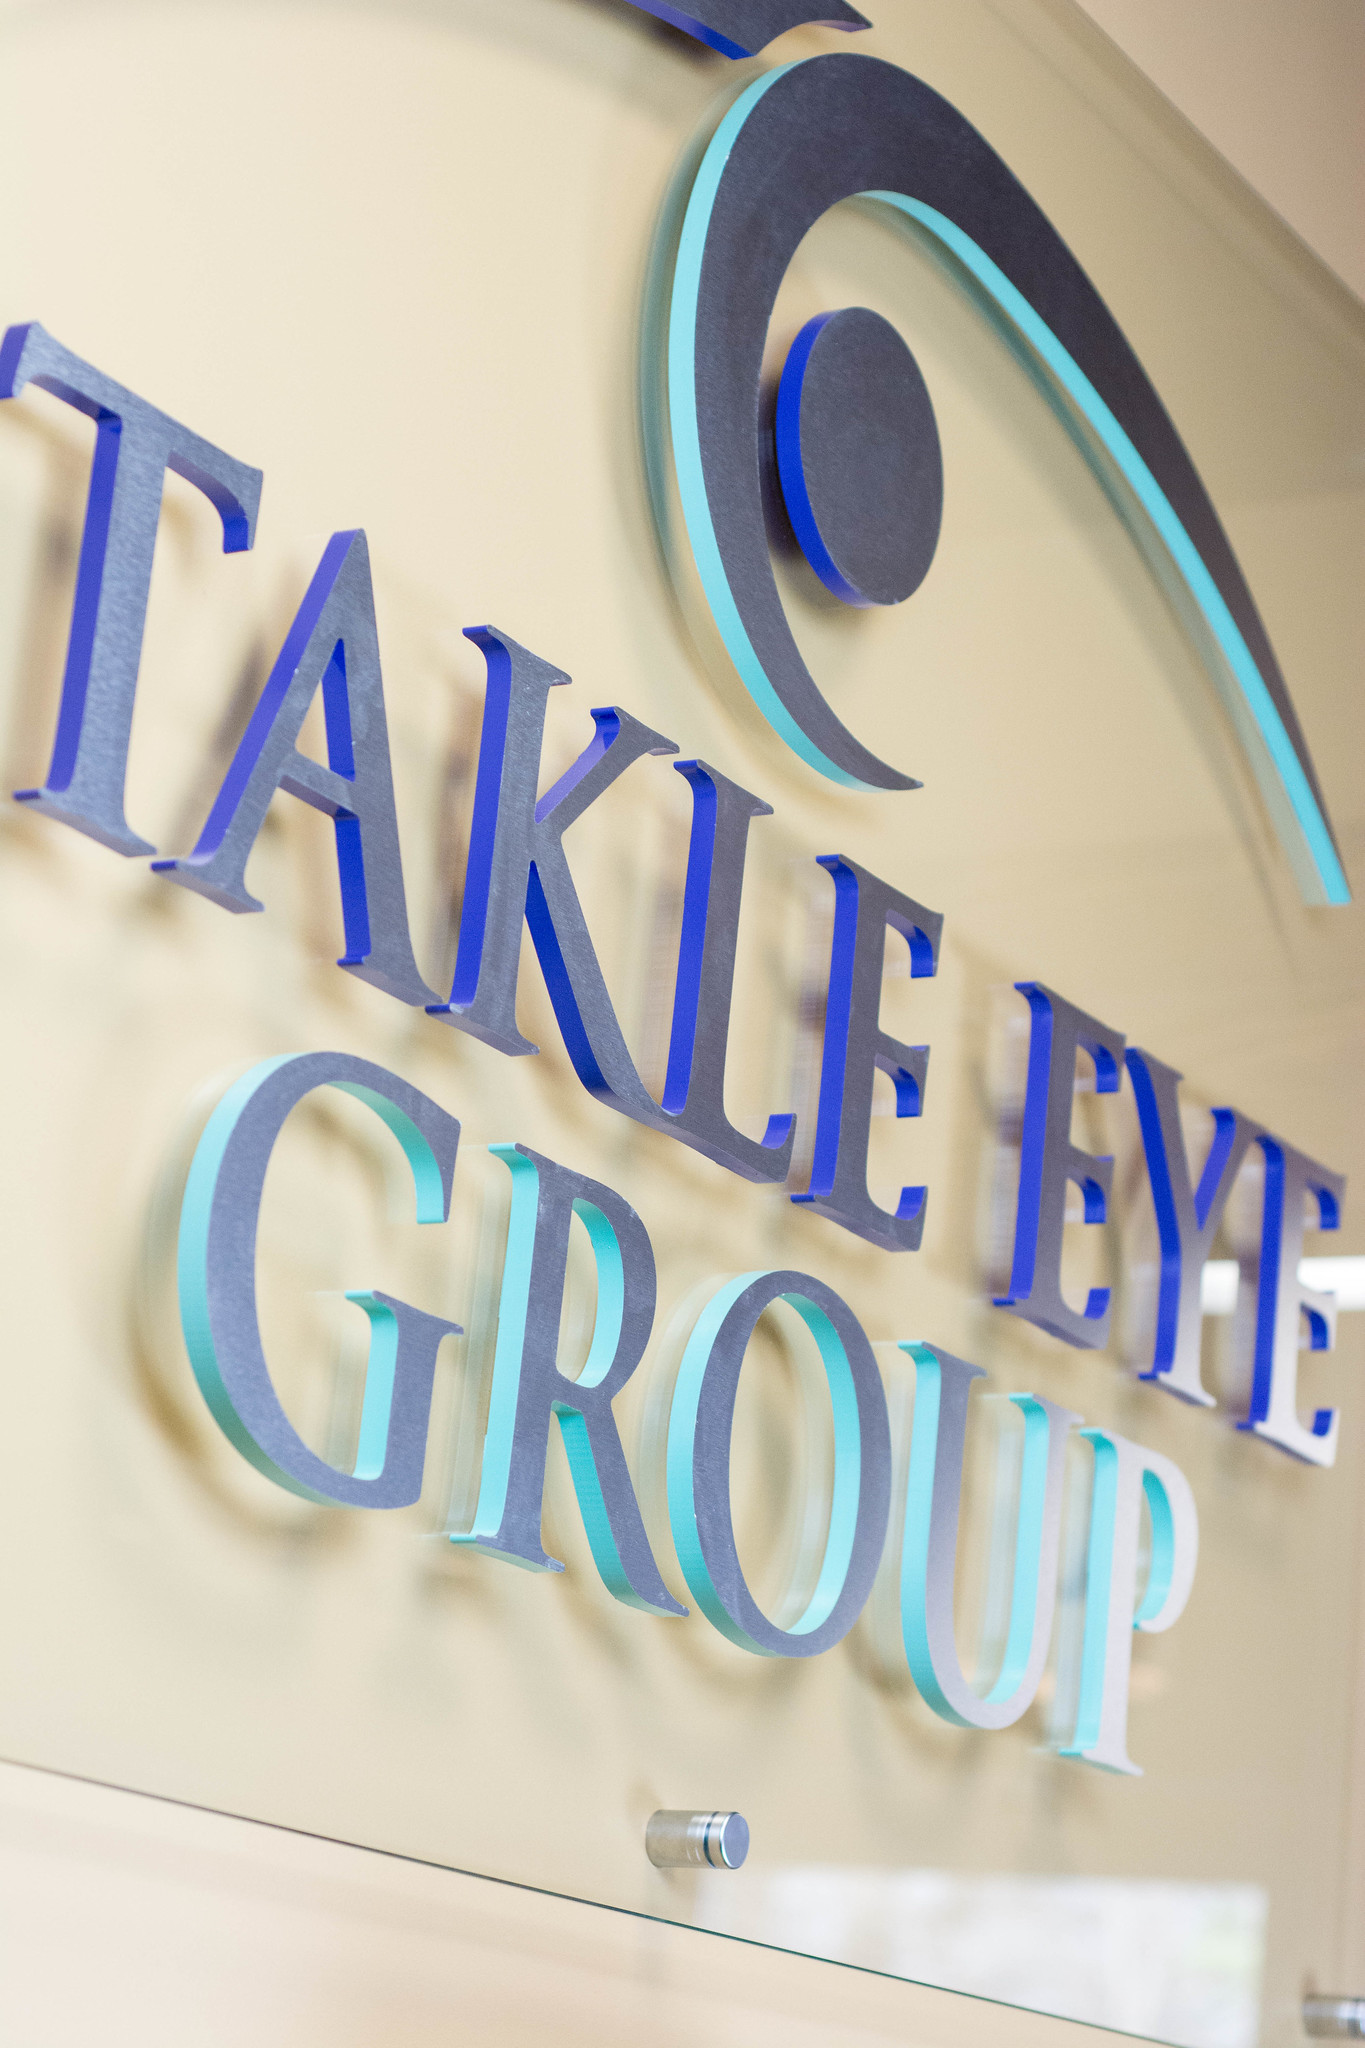 Takle Eye Group